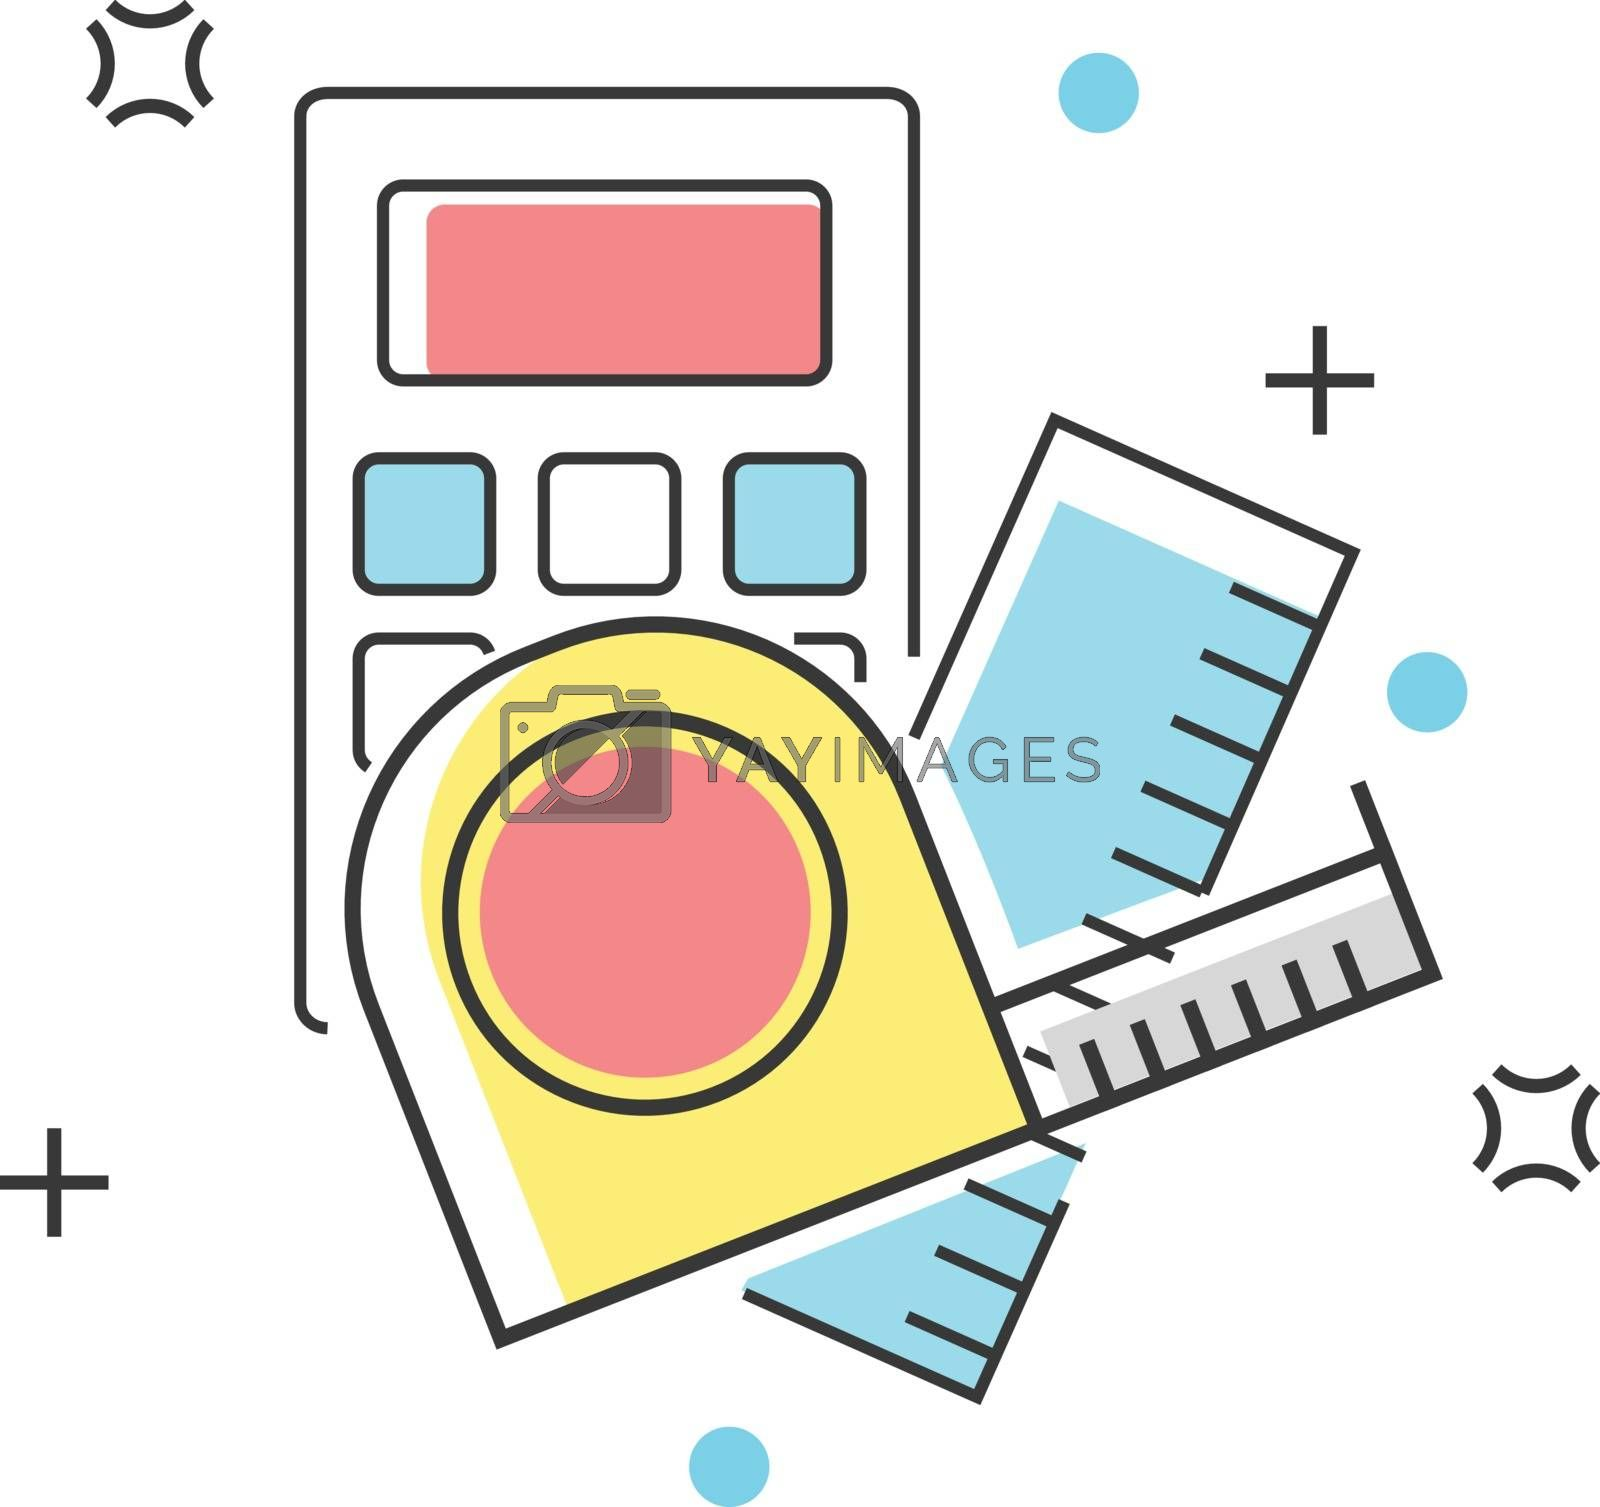 Calculator and measuring equipment construction color line icon. Buildings, engineering, property, architecture and materials vector illustration by glossygirl21